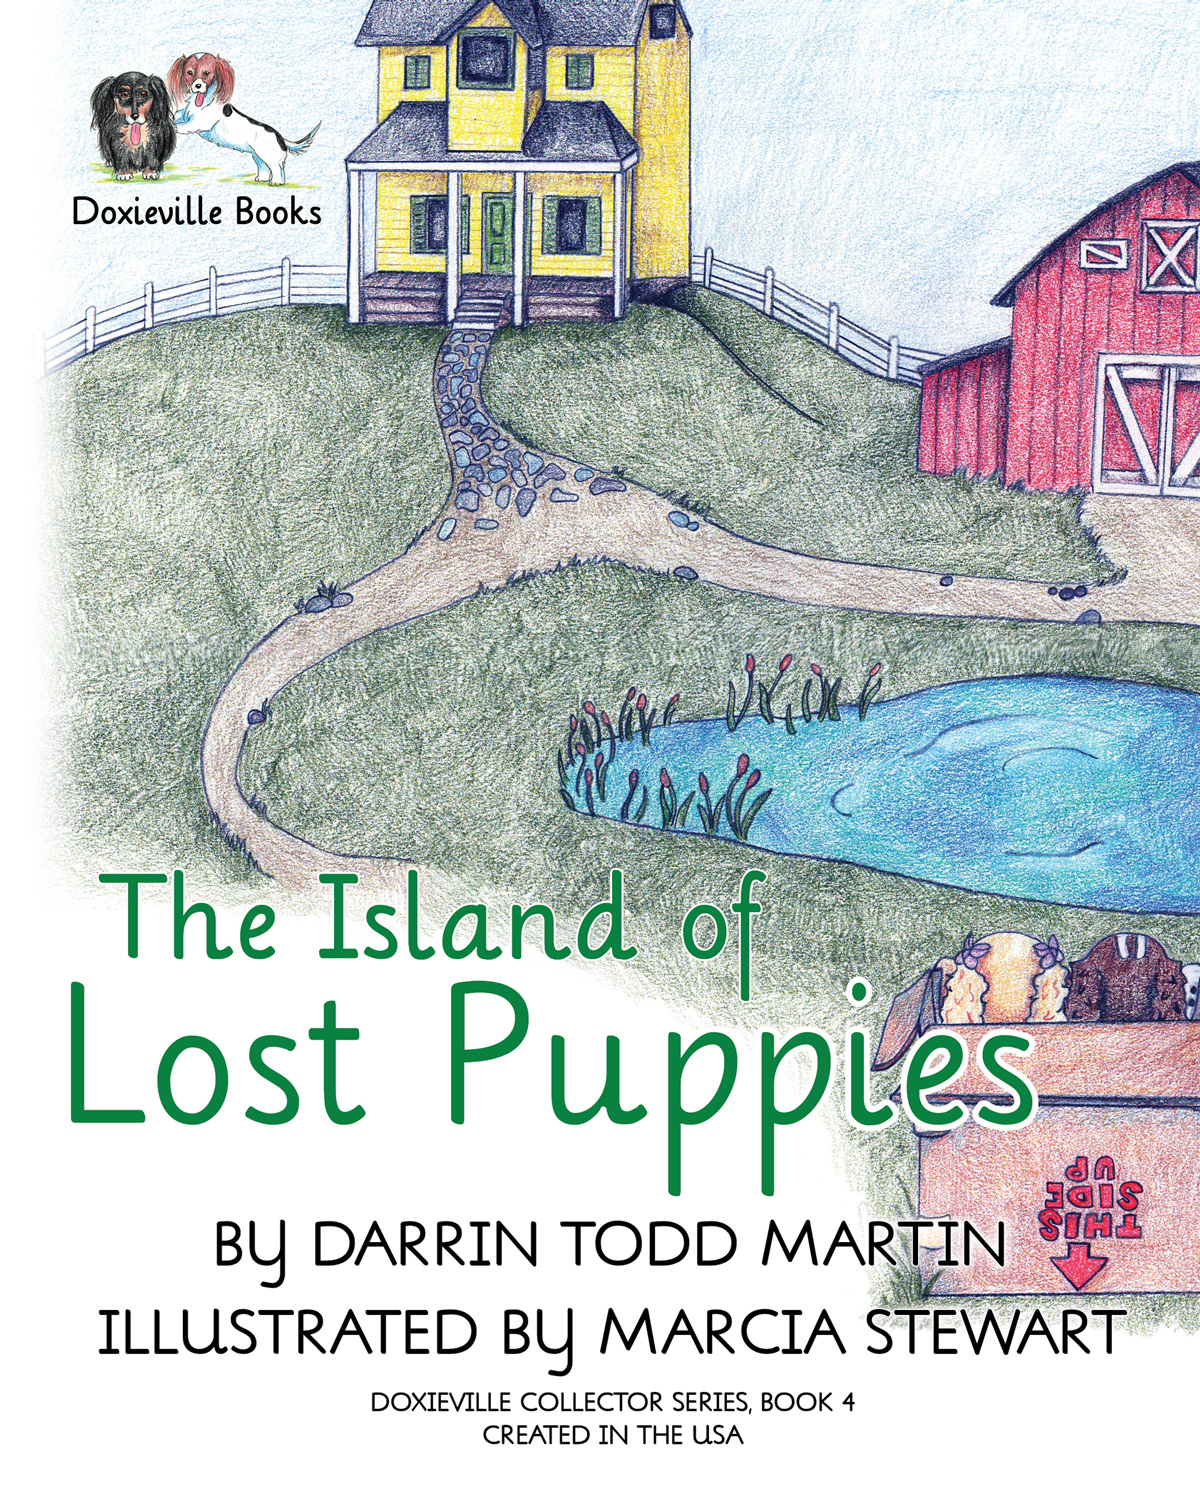 The Island of Lost Puppies